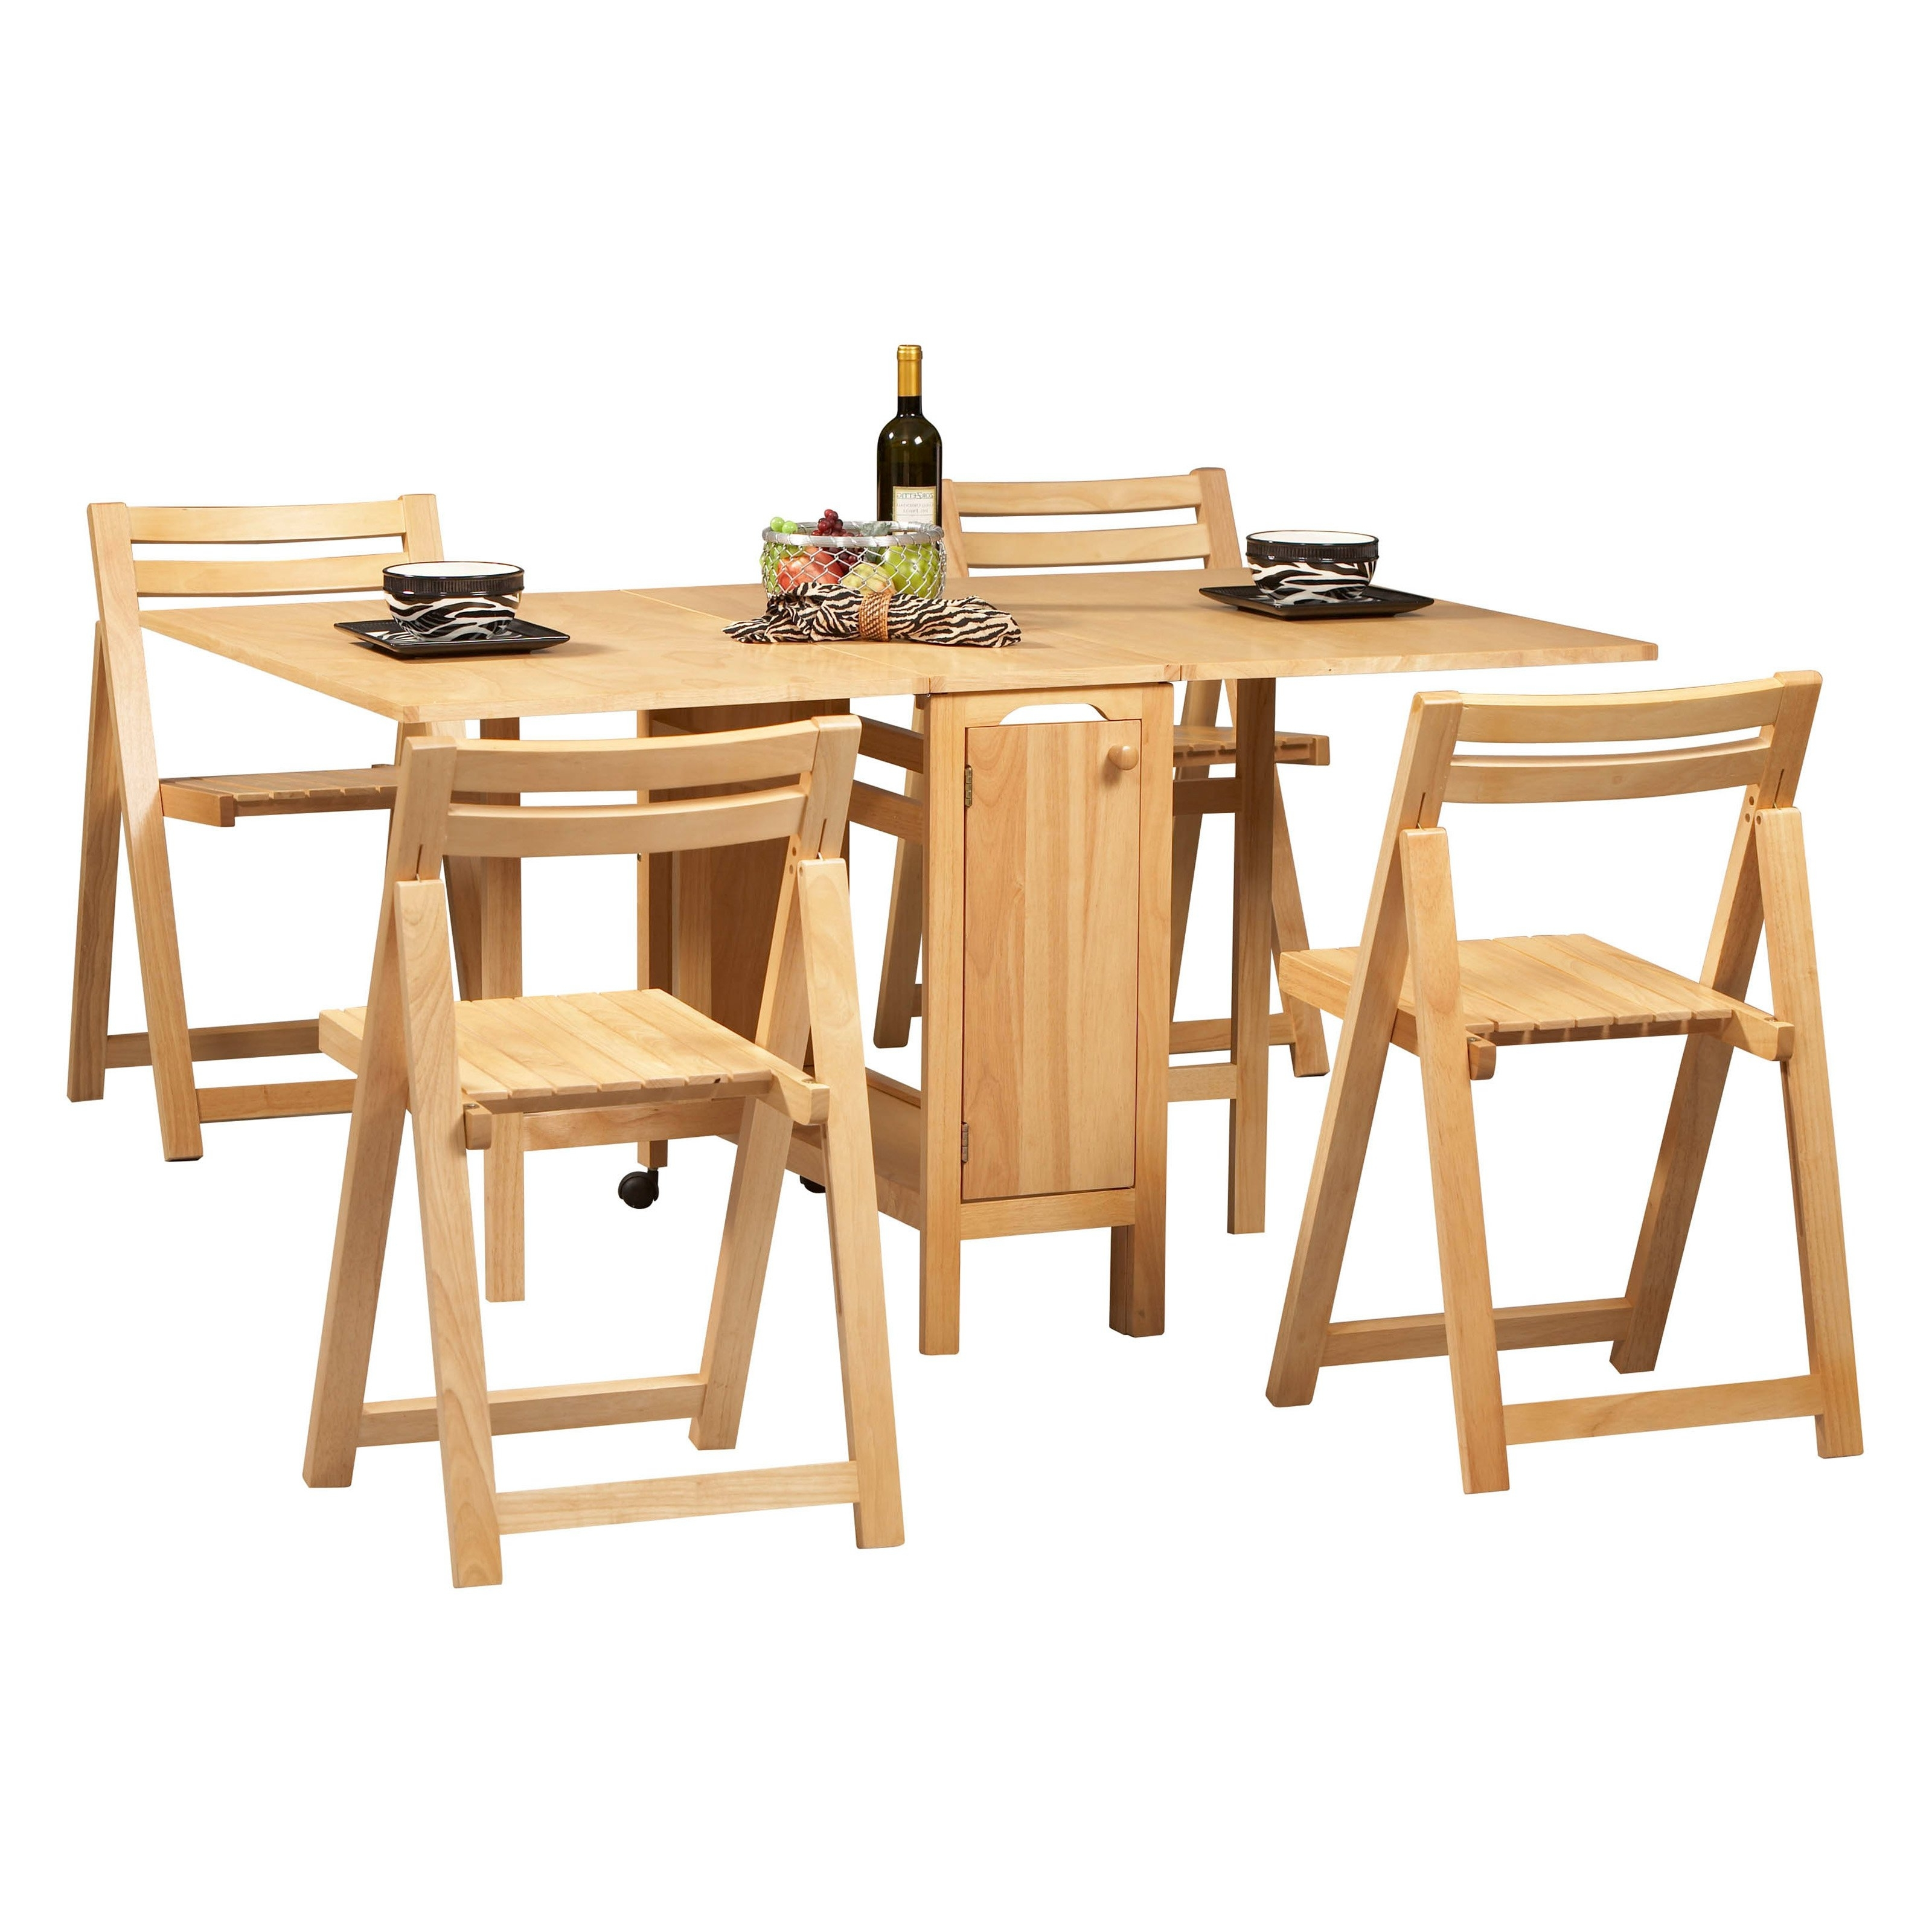 62 Foldable Dining Table Set, Free Shipping Boshile Outdoor Folding for Most Popular Large Folding Dining Tables